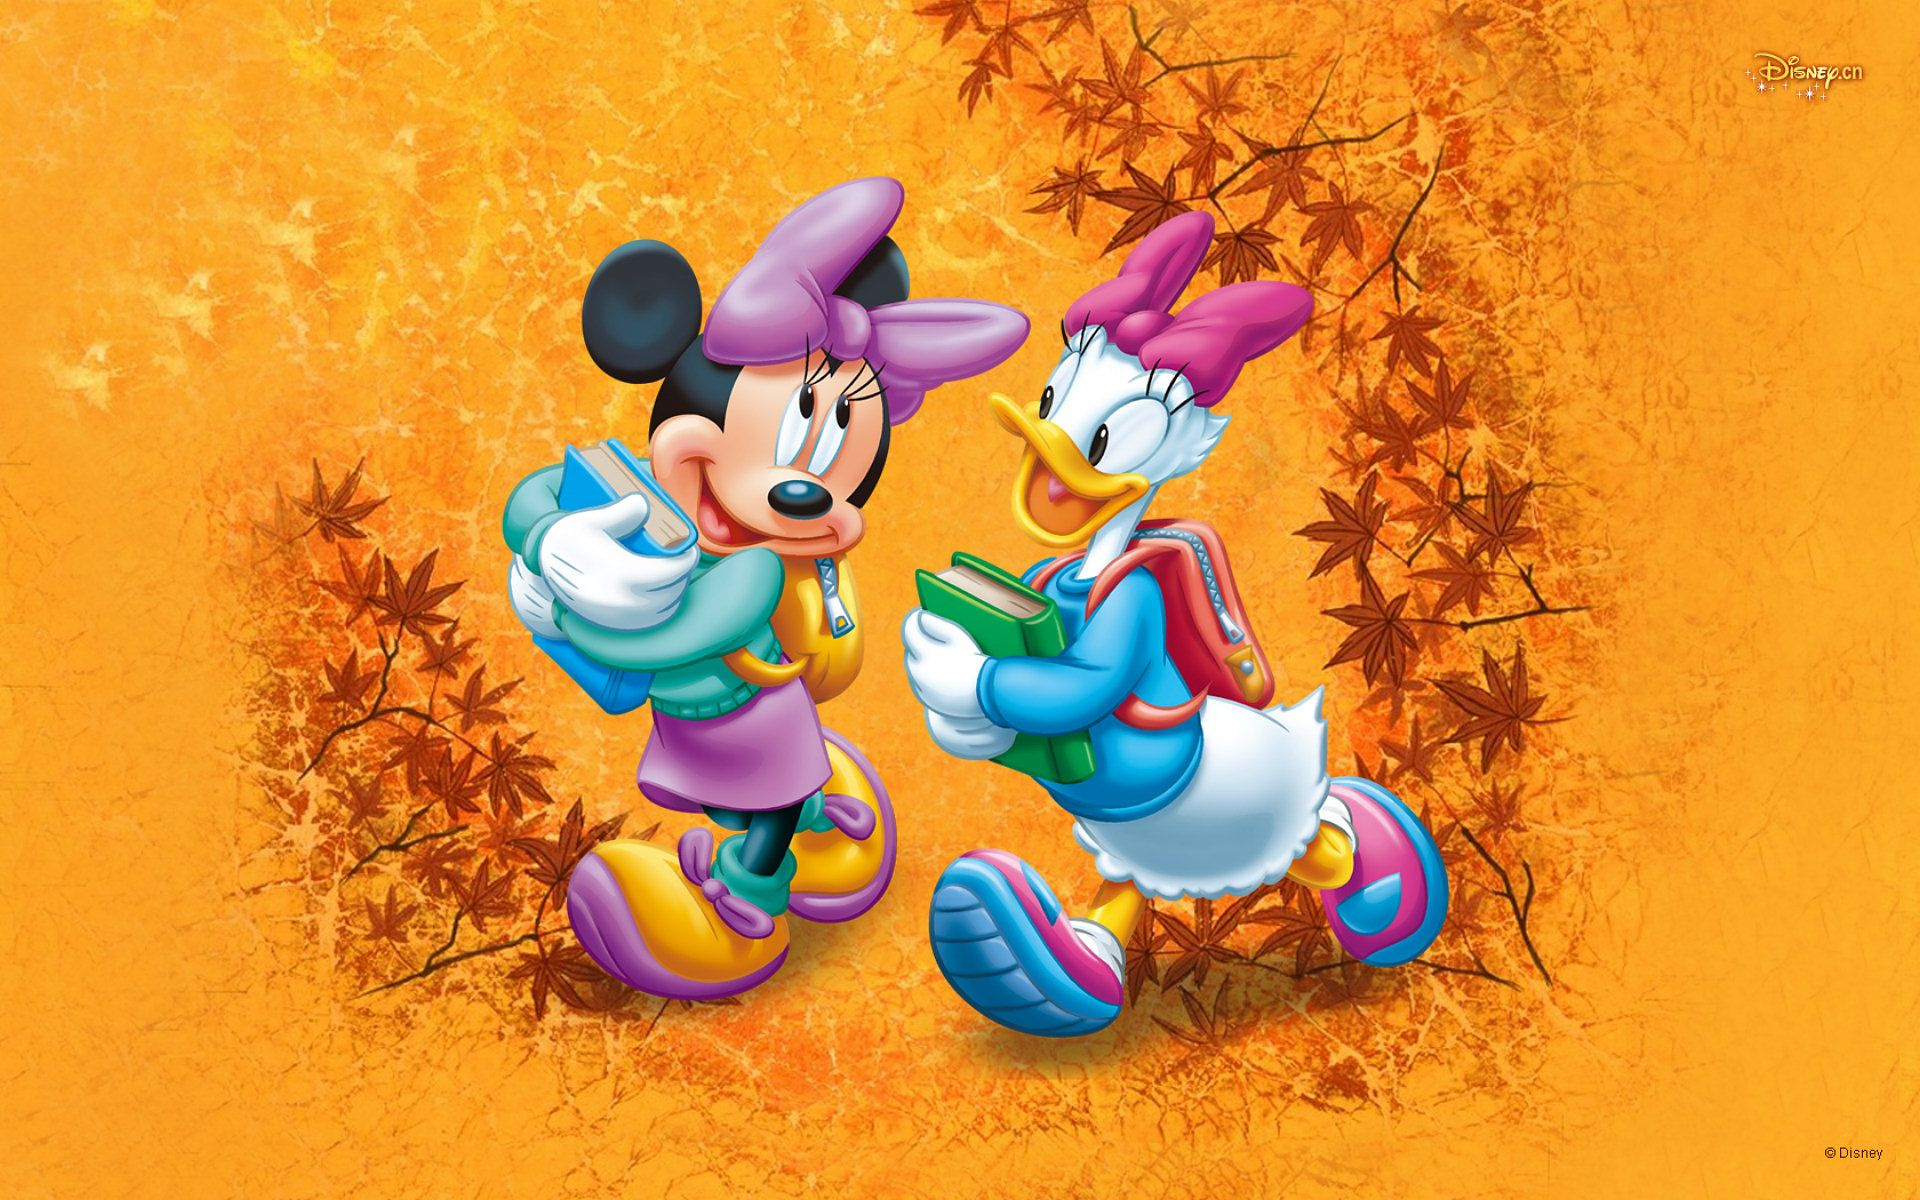 Cartoon Minnie Mouse & Daisy Duck Wallpaper (With images